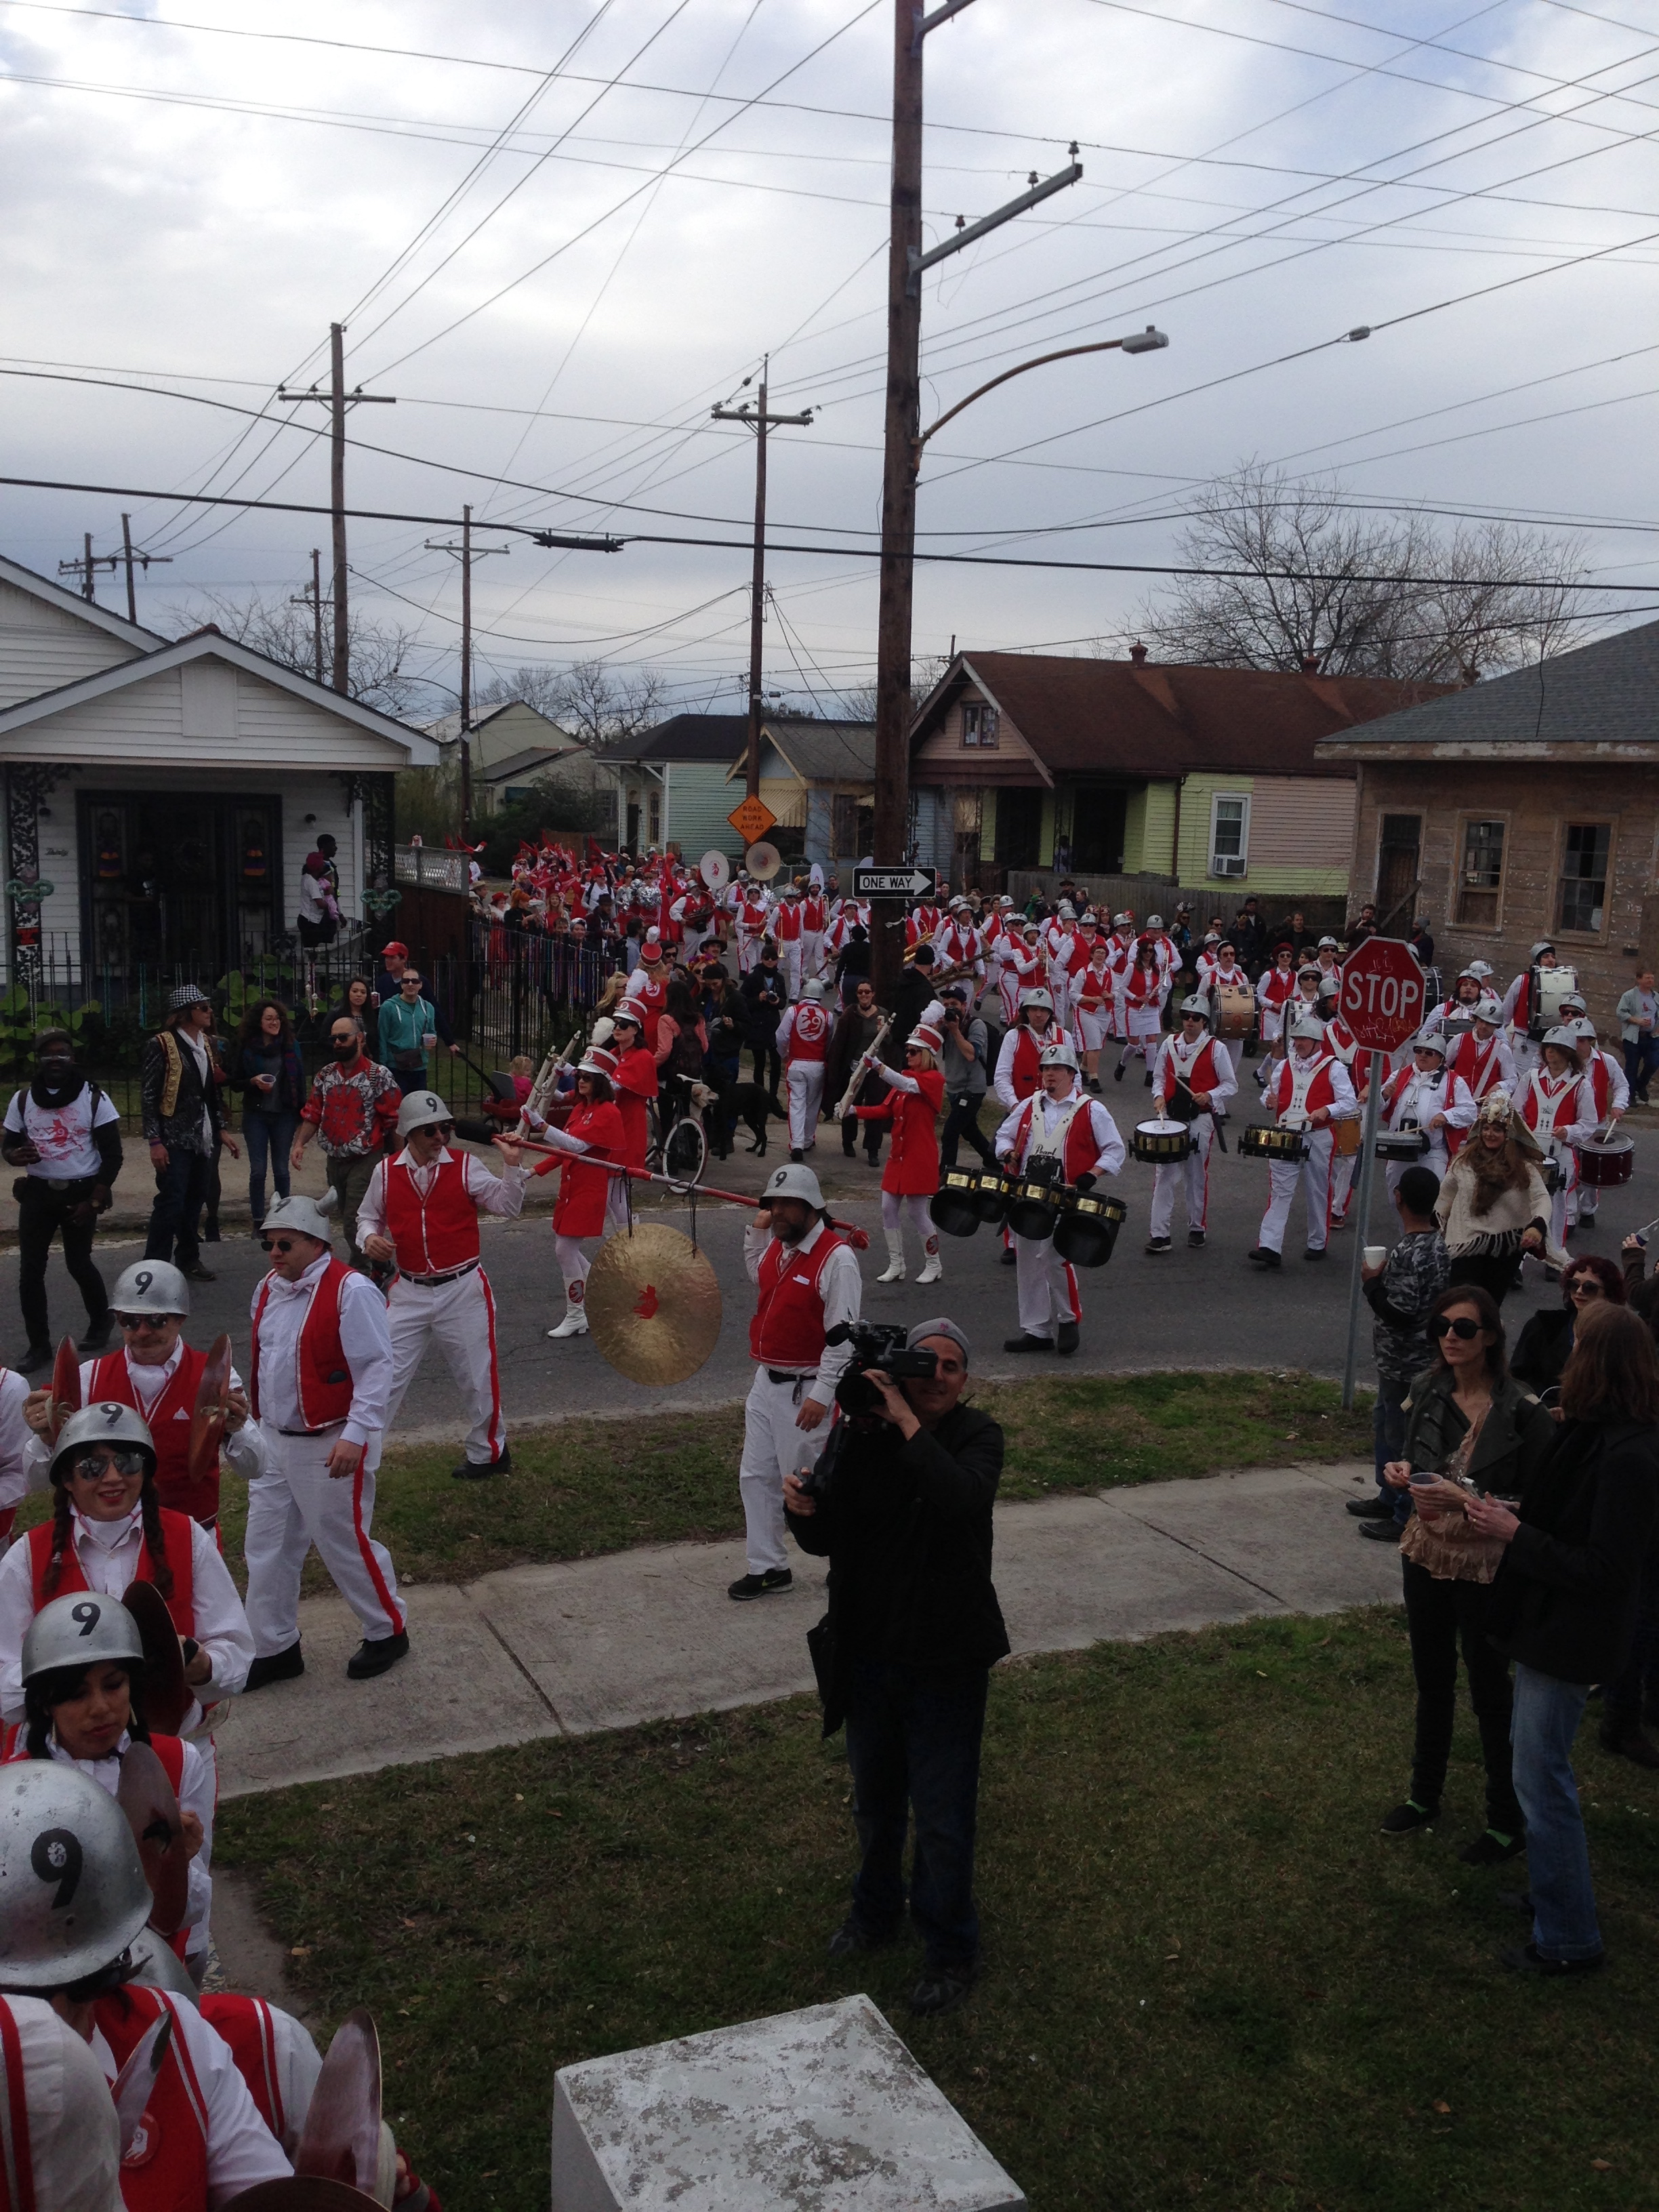 9TH WARD MARCHING BAND ENTER RECORDING!